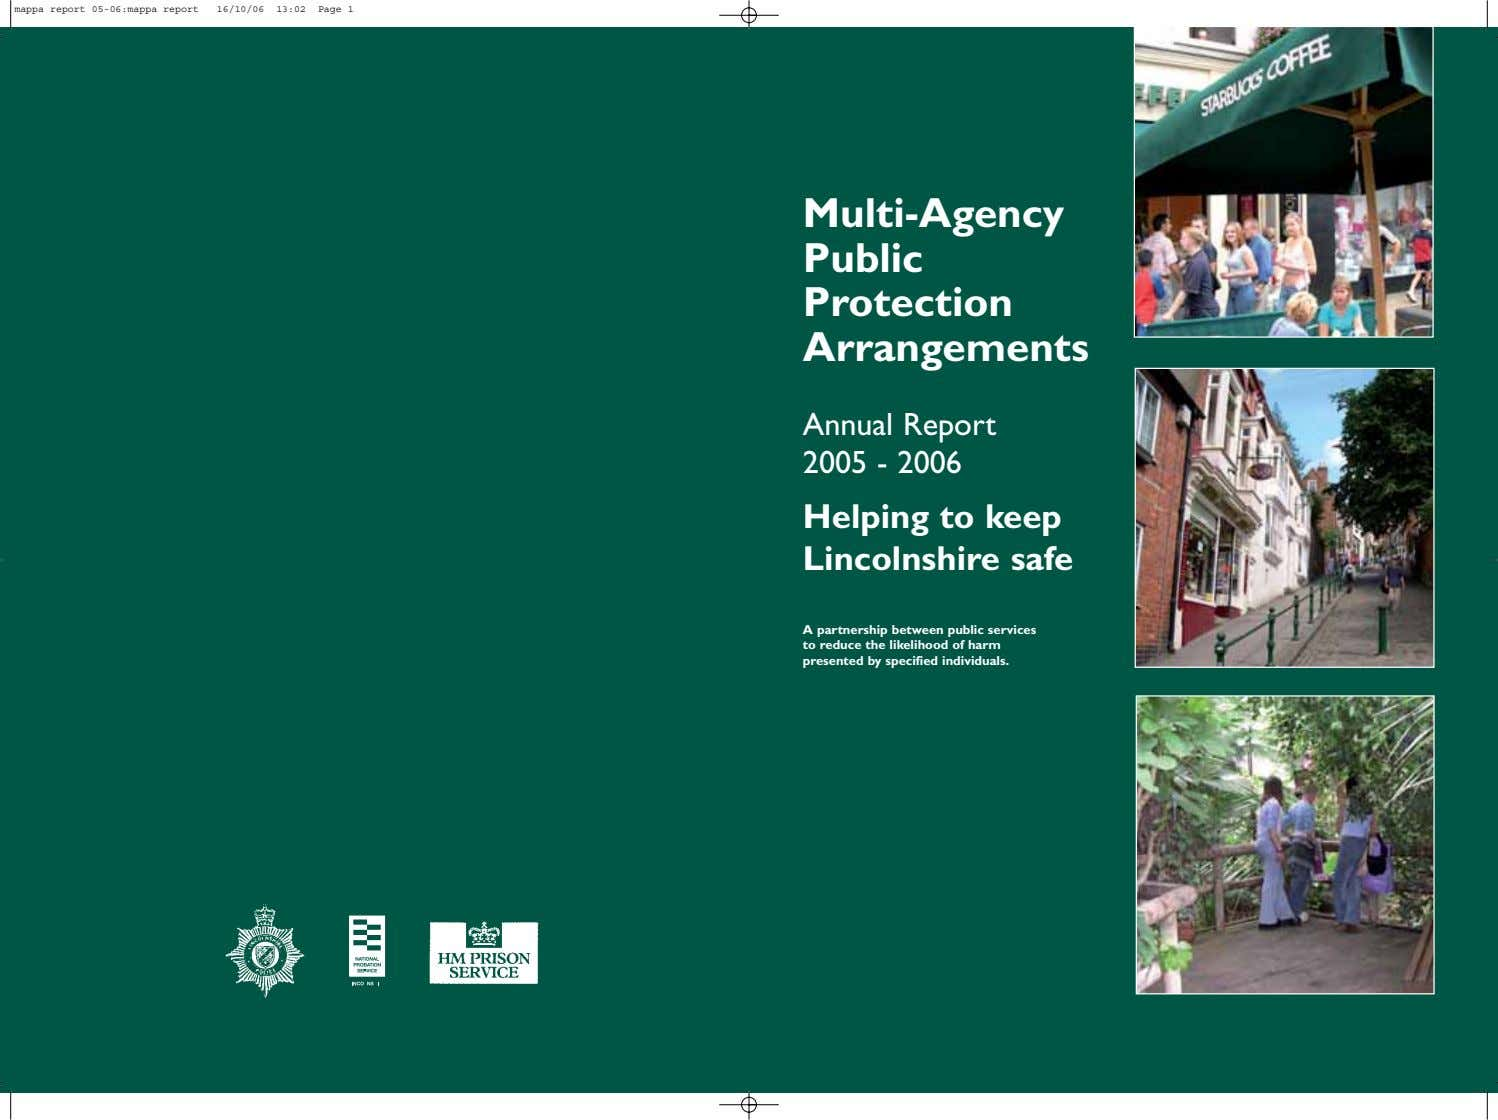 mappa report 05-06:mappa report 16/10/06 13:02 Page 1 Multi-Agency Public Protection Arrangements Annual Report 2005 -